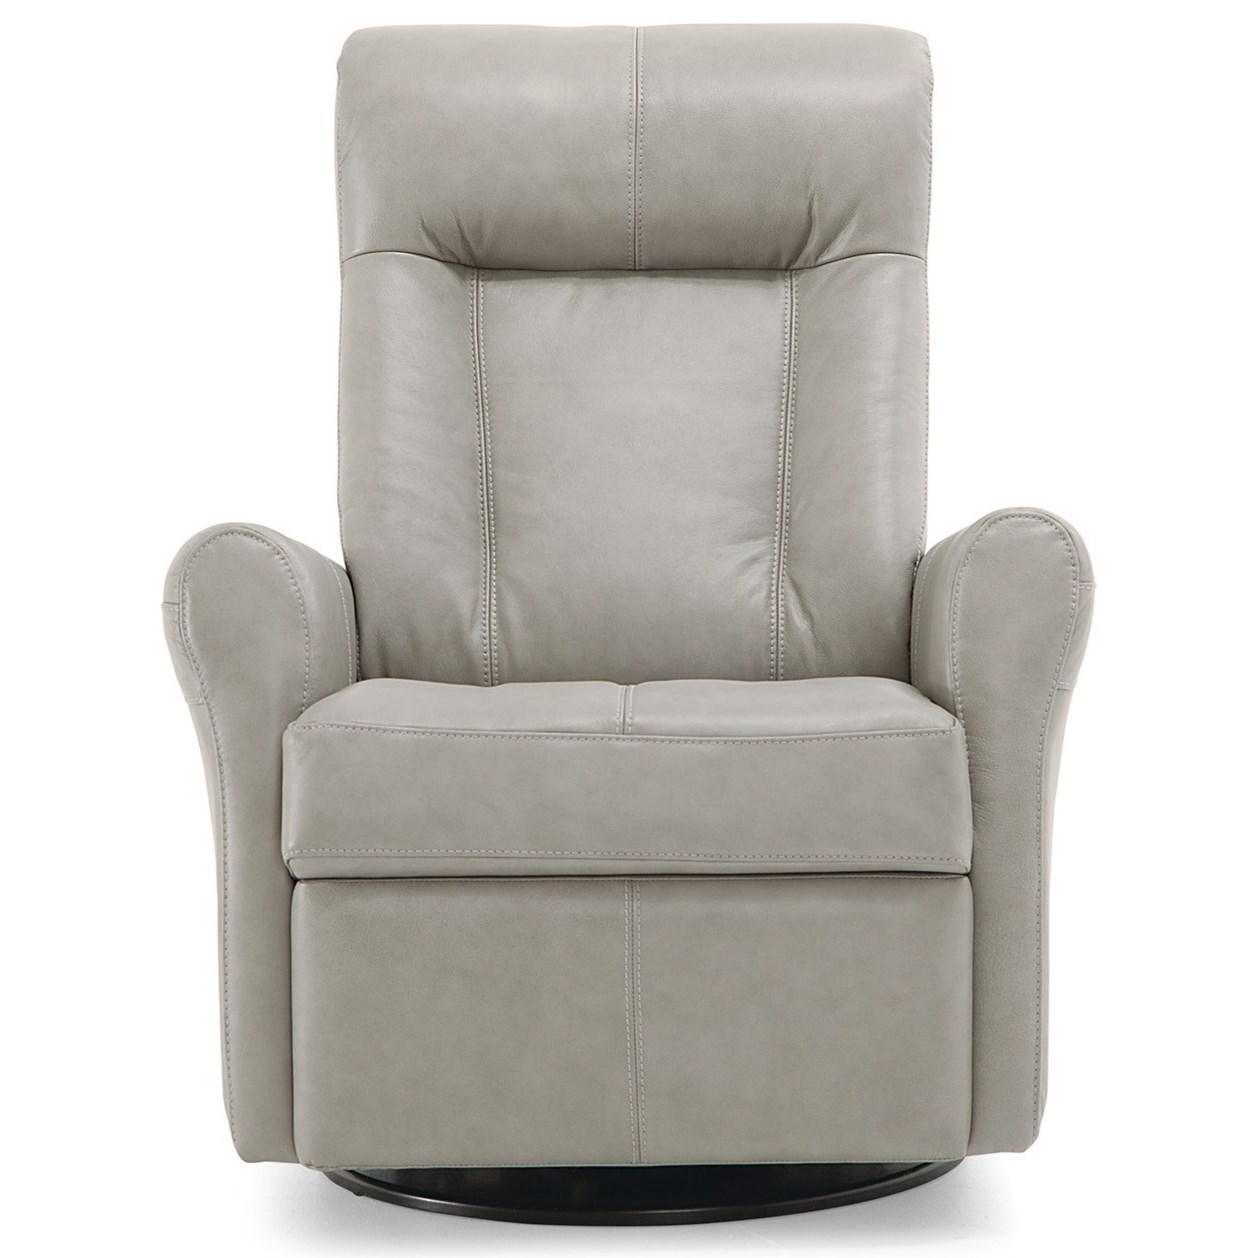 Palliser Yellowstone II 42211 34 Casual Swivel Glider Manual